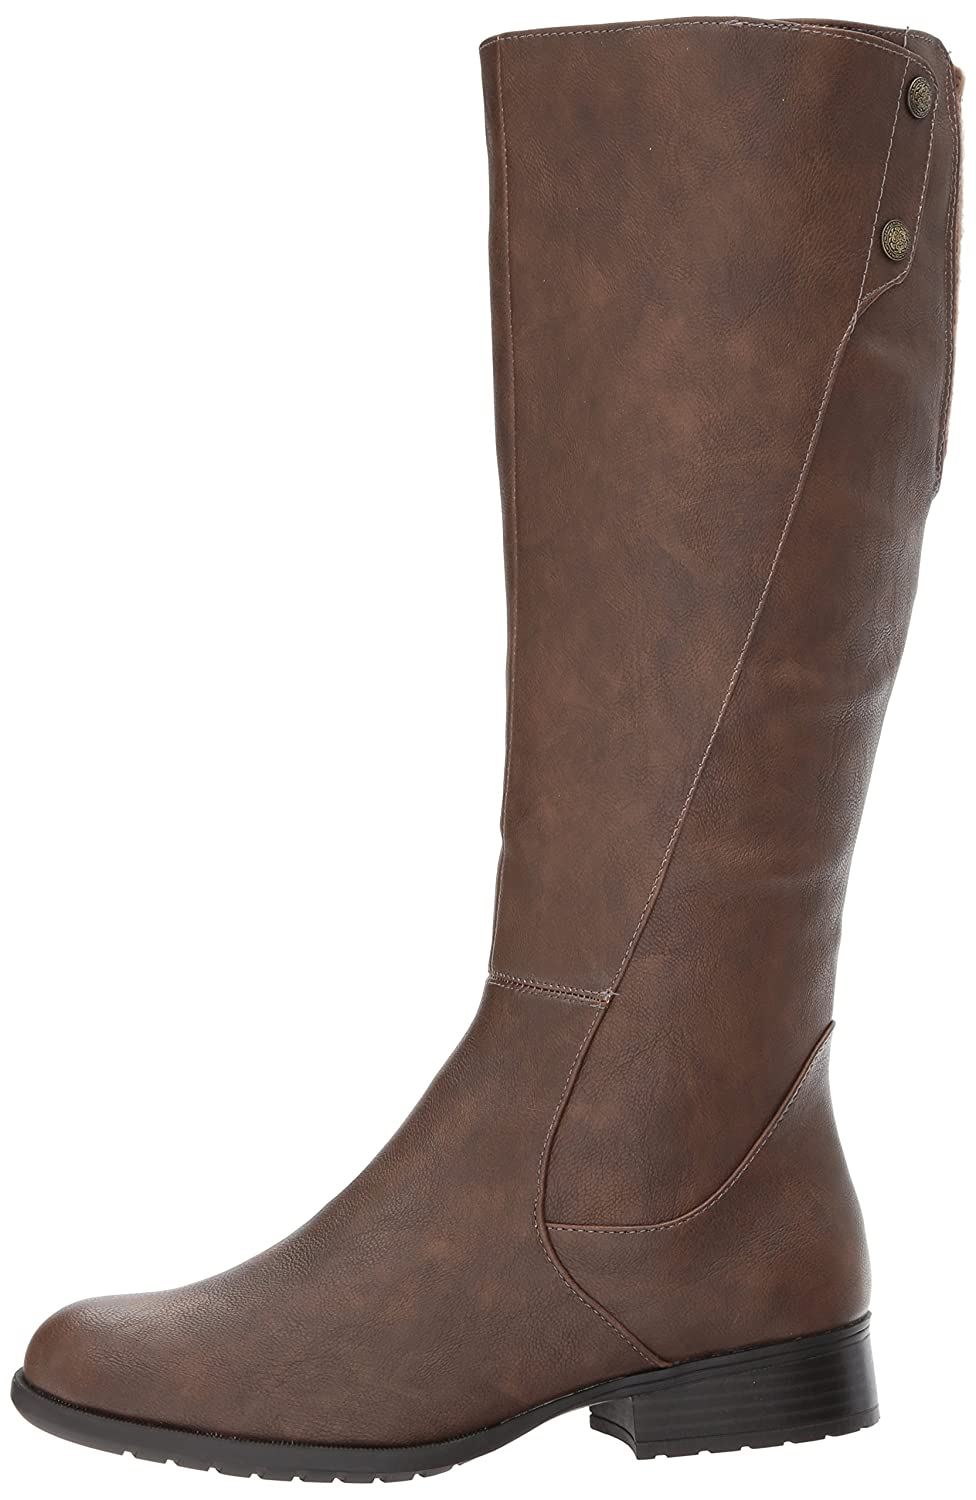 LifeStride Women's 8.5 Xripley Riding Boot B071JXDFGD 8.5 Women's W US|Dark Tan 4dbcec